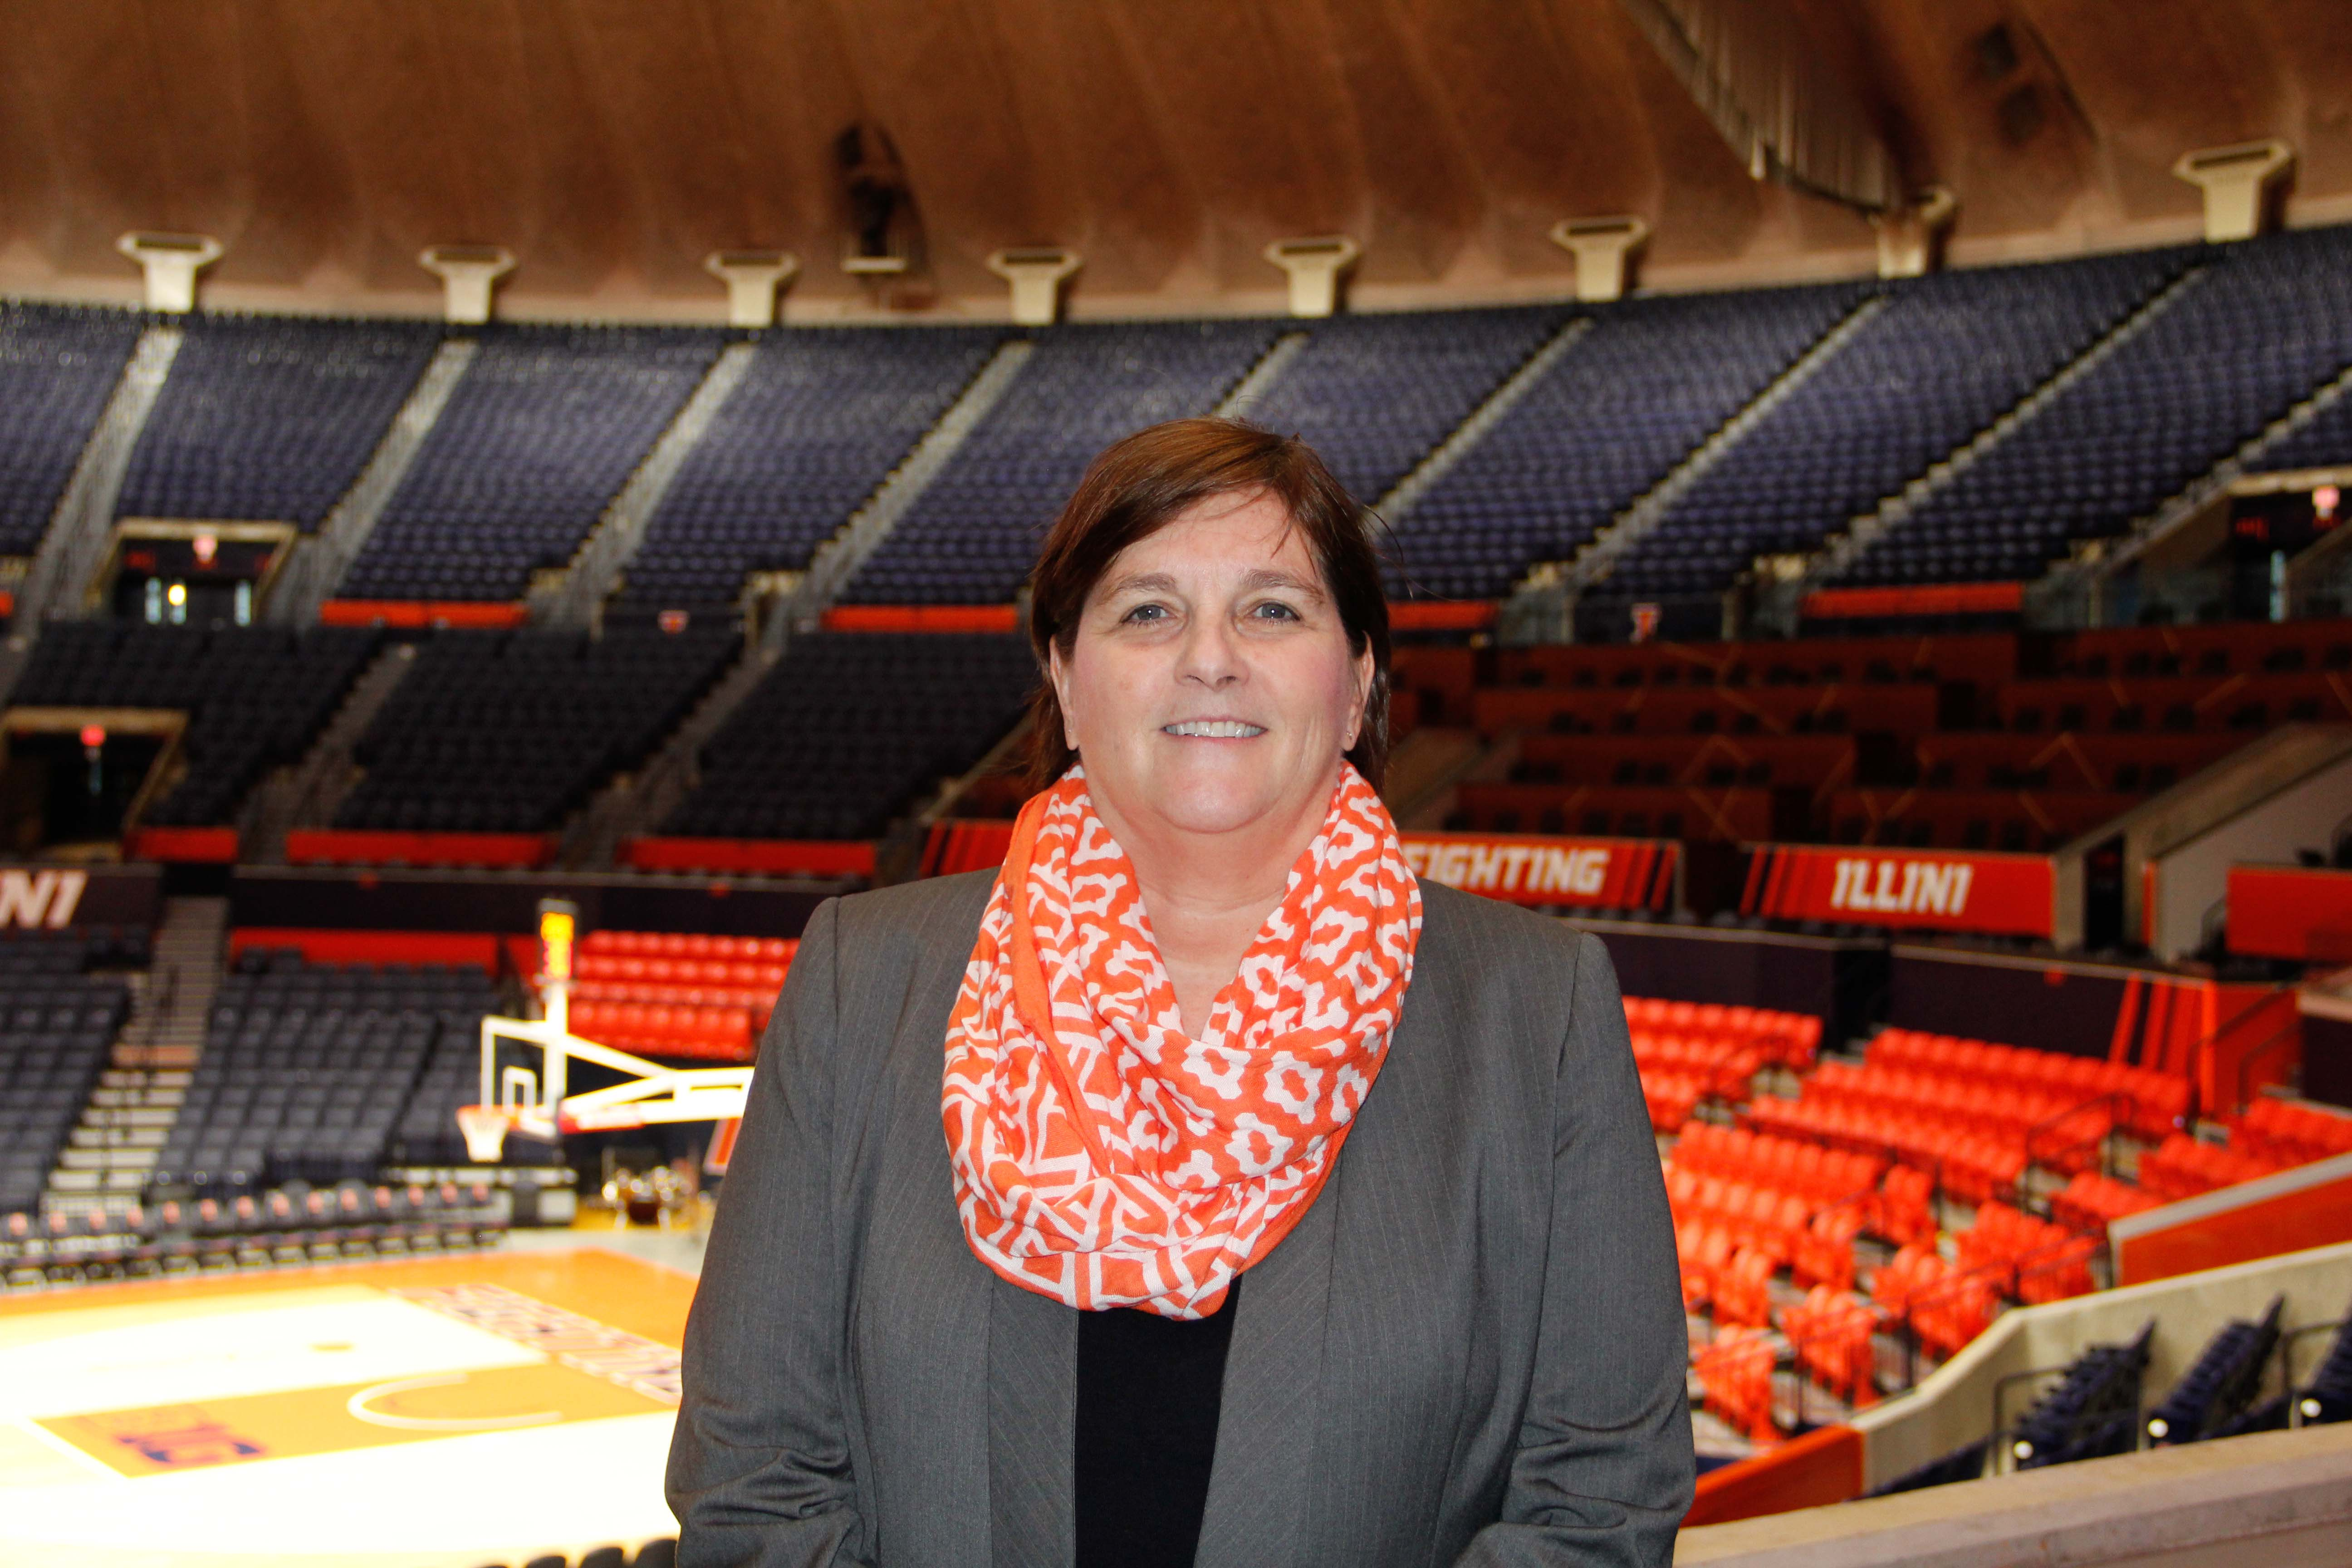 Illinois Women's head basketball coach Nancy Fahey retained two assistants under former head coach Matt Bollant. Fahey also brought along an assistant from her previous head coaching job at Washington University.